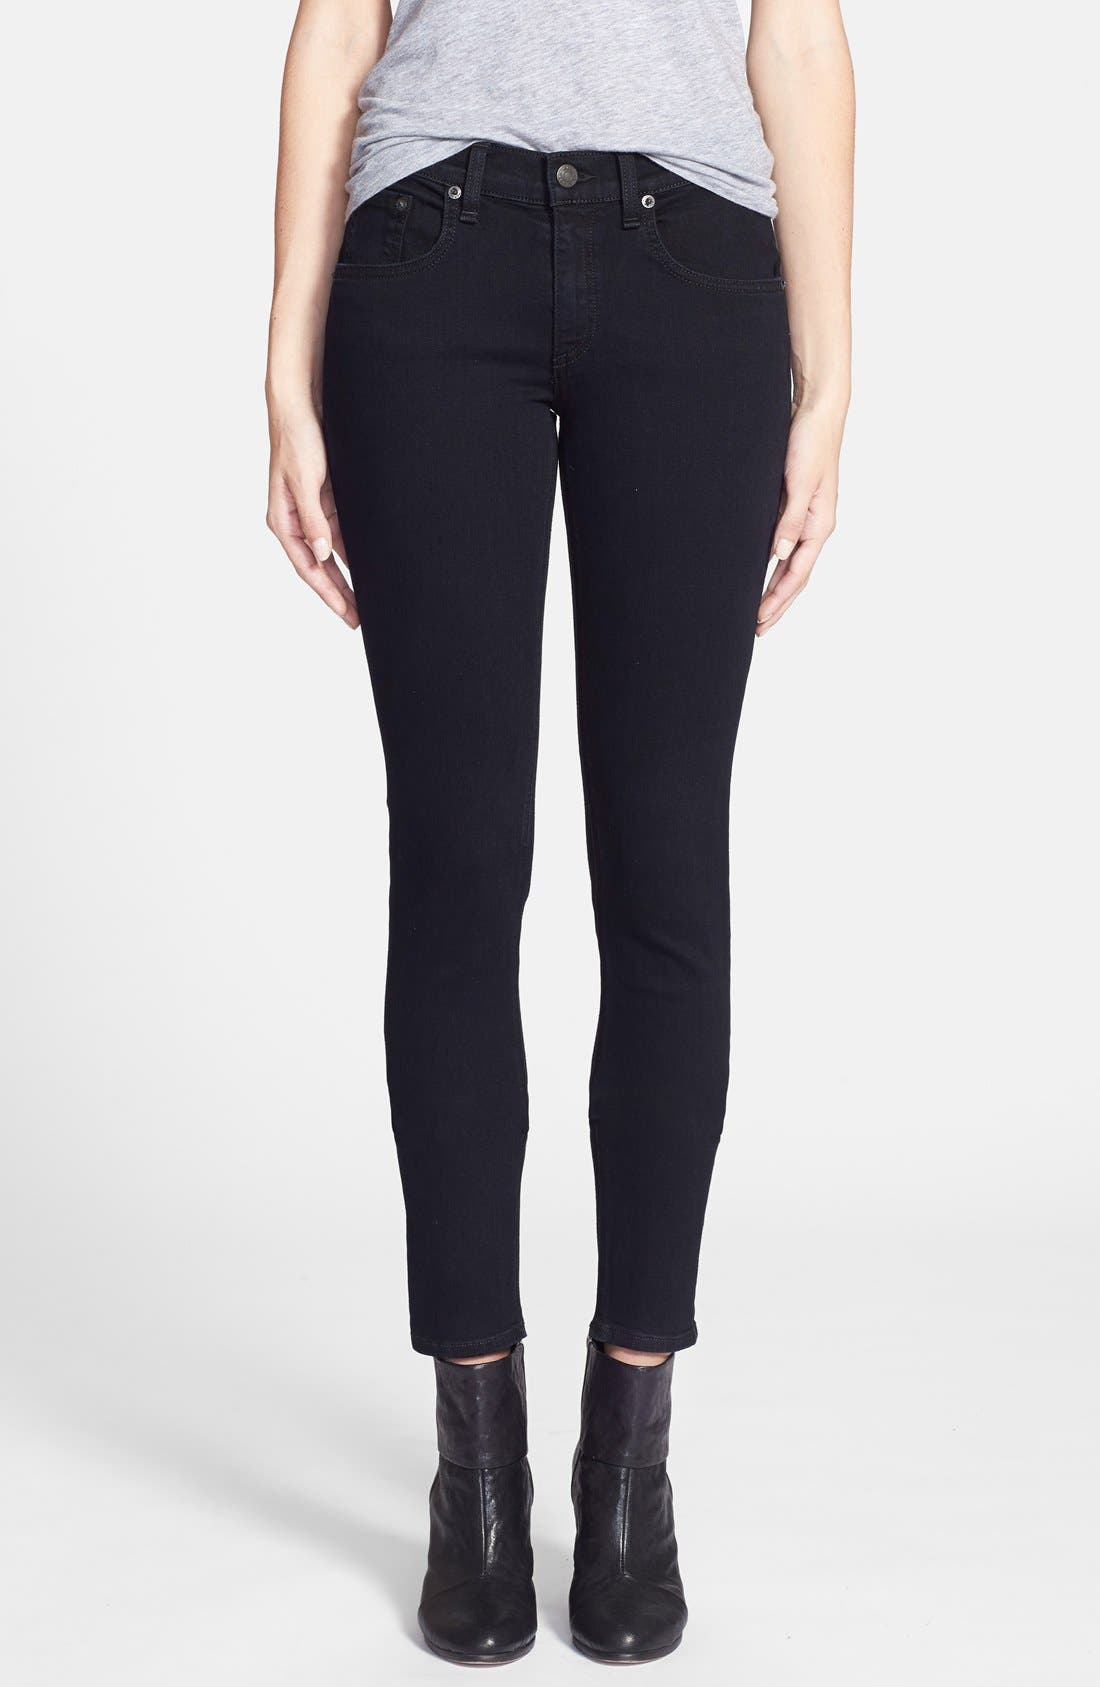 'The Skinny' Stretch Jeans,                             Main thumbnail 1, color,                             Coal